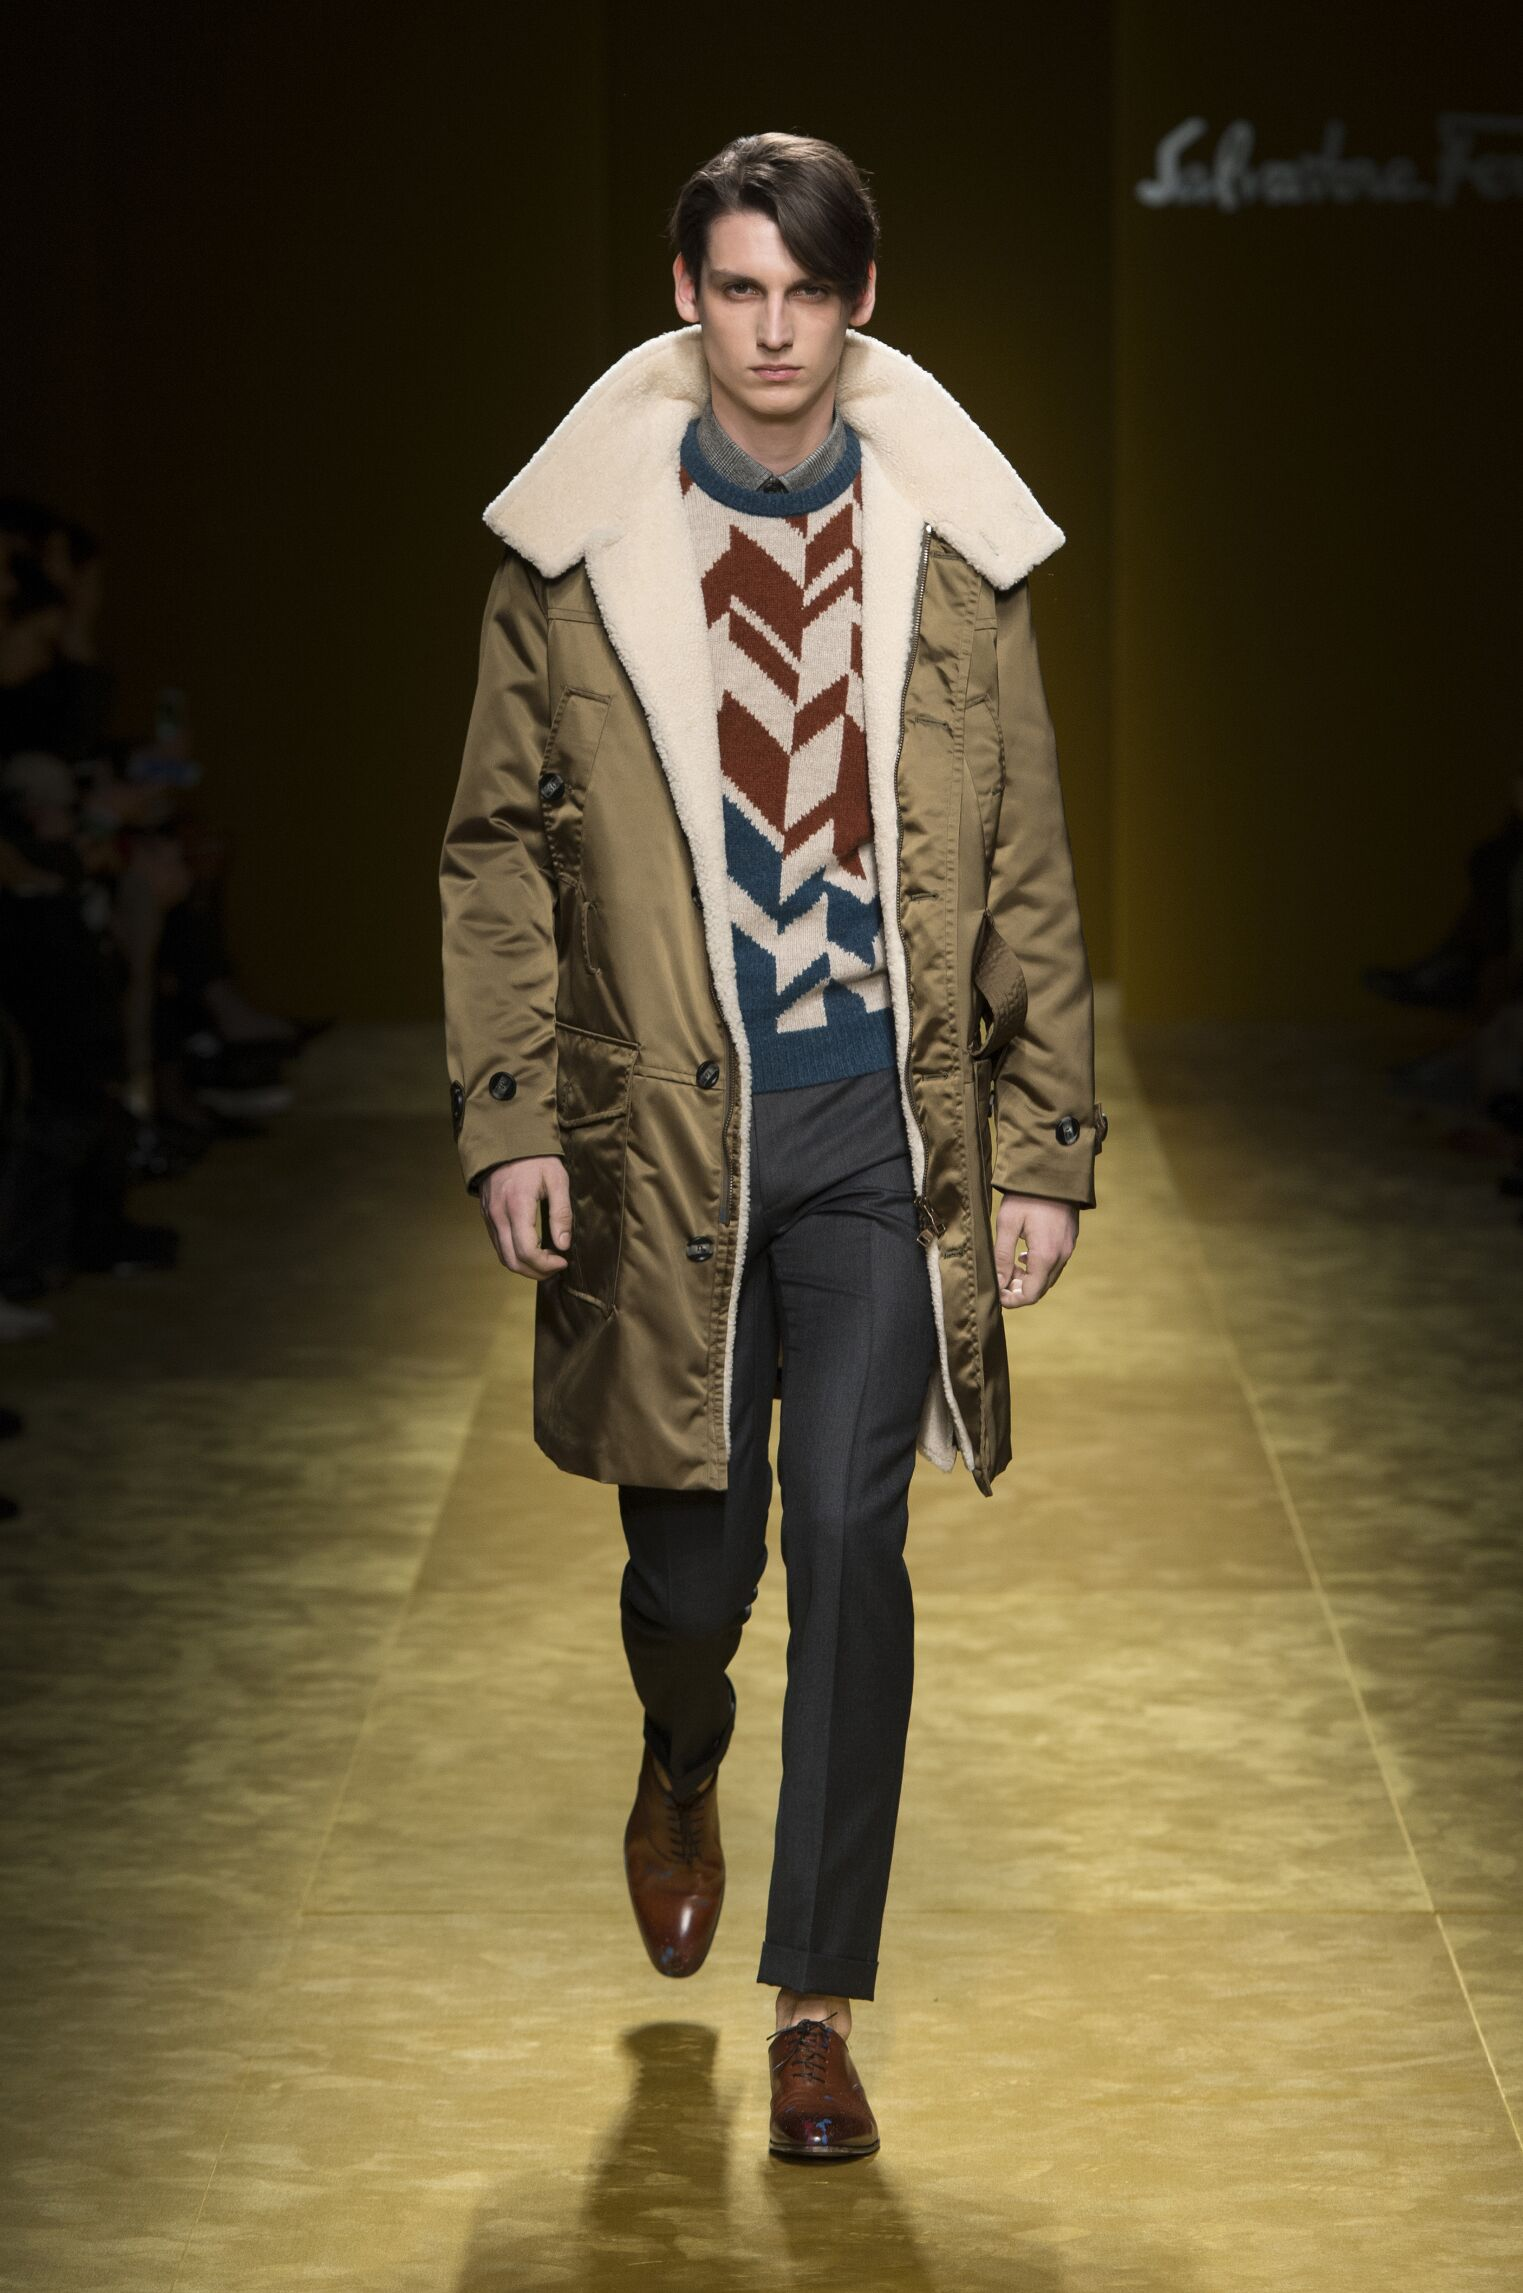 Catwalk Salvatore Ferragamo Man Fashion Show Winter 2016